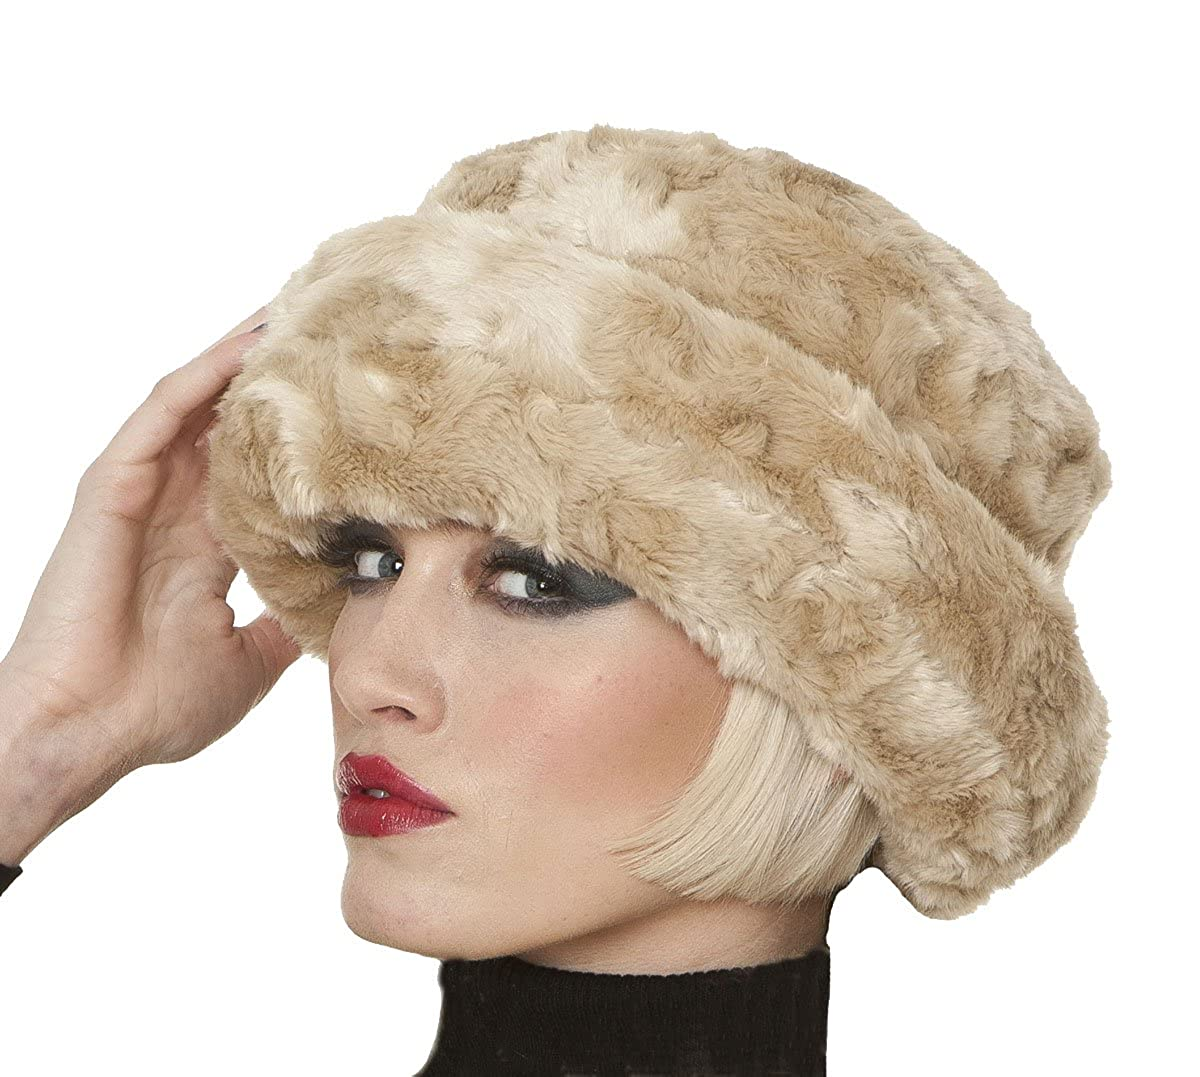 Socks Uwear Womens Luxury Faux Fur Cloche Warm Winter Thermal Hat Flo Champagne LHATFlo-Cloche-Champagne Flo Cloche